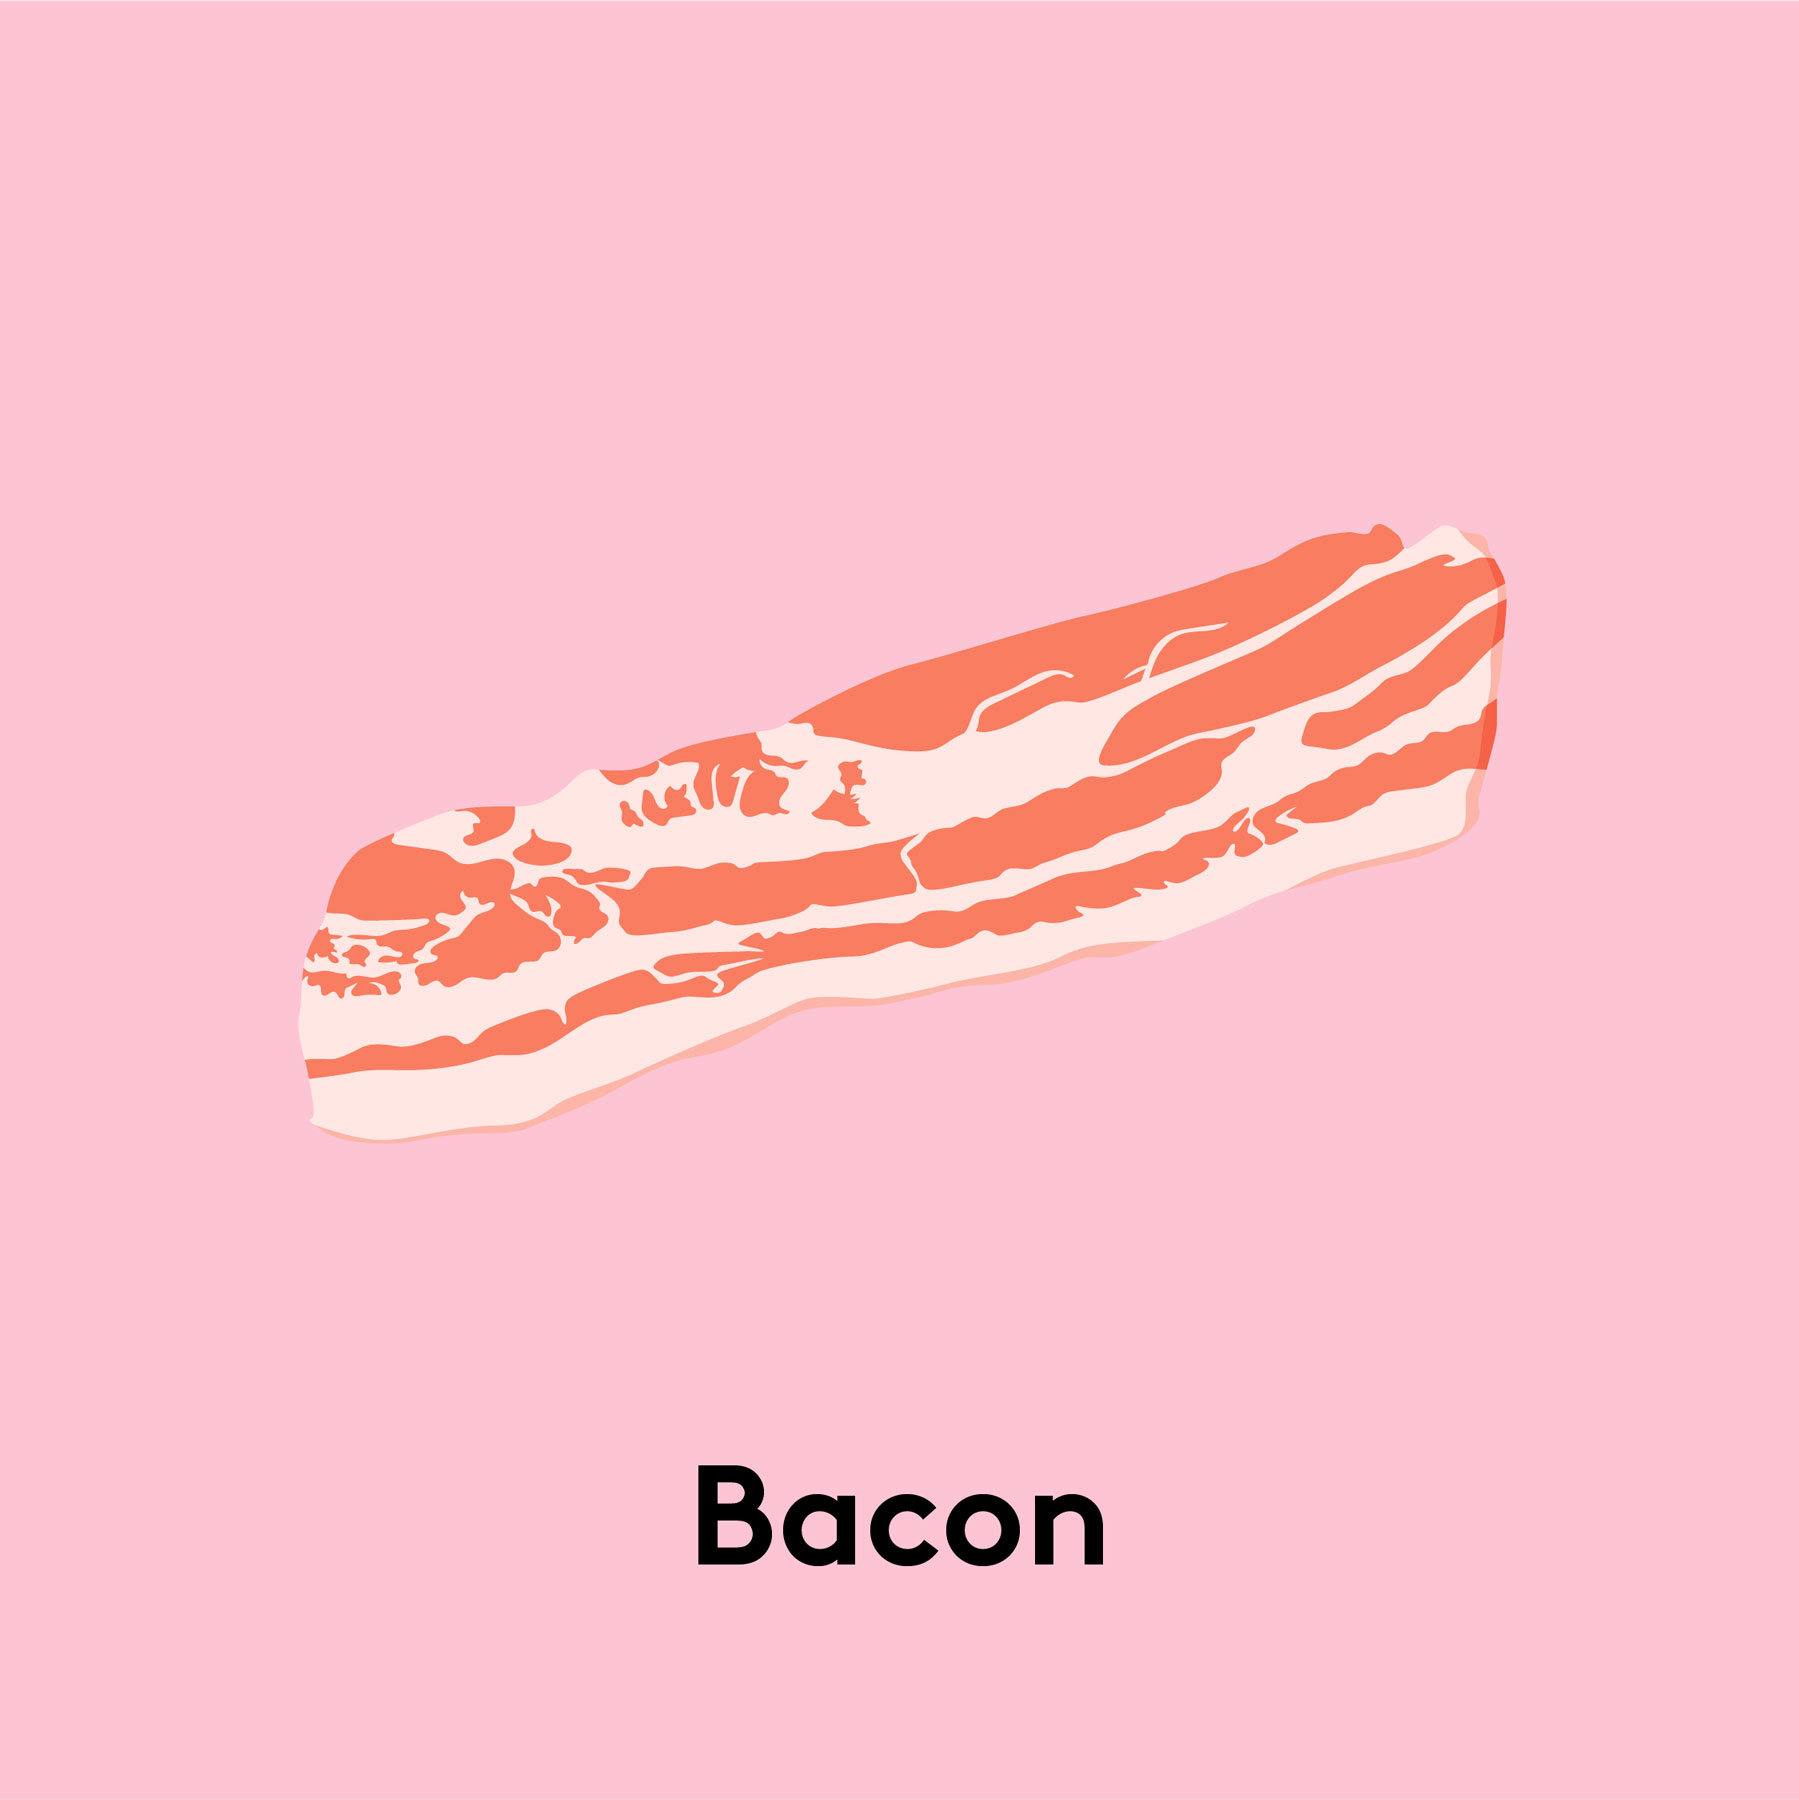 Types of pork cuts - Bacon